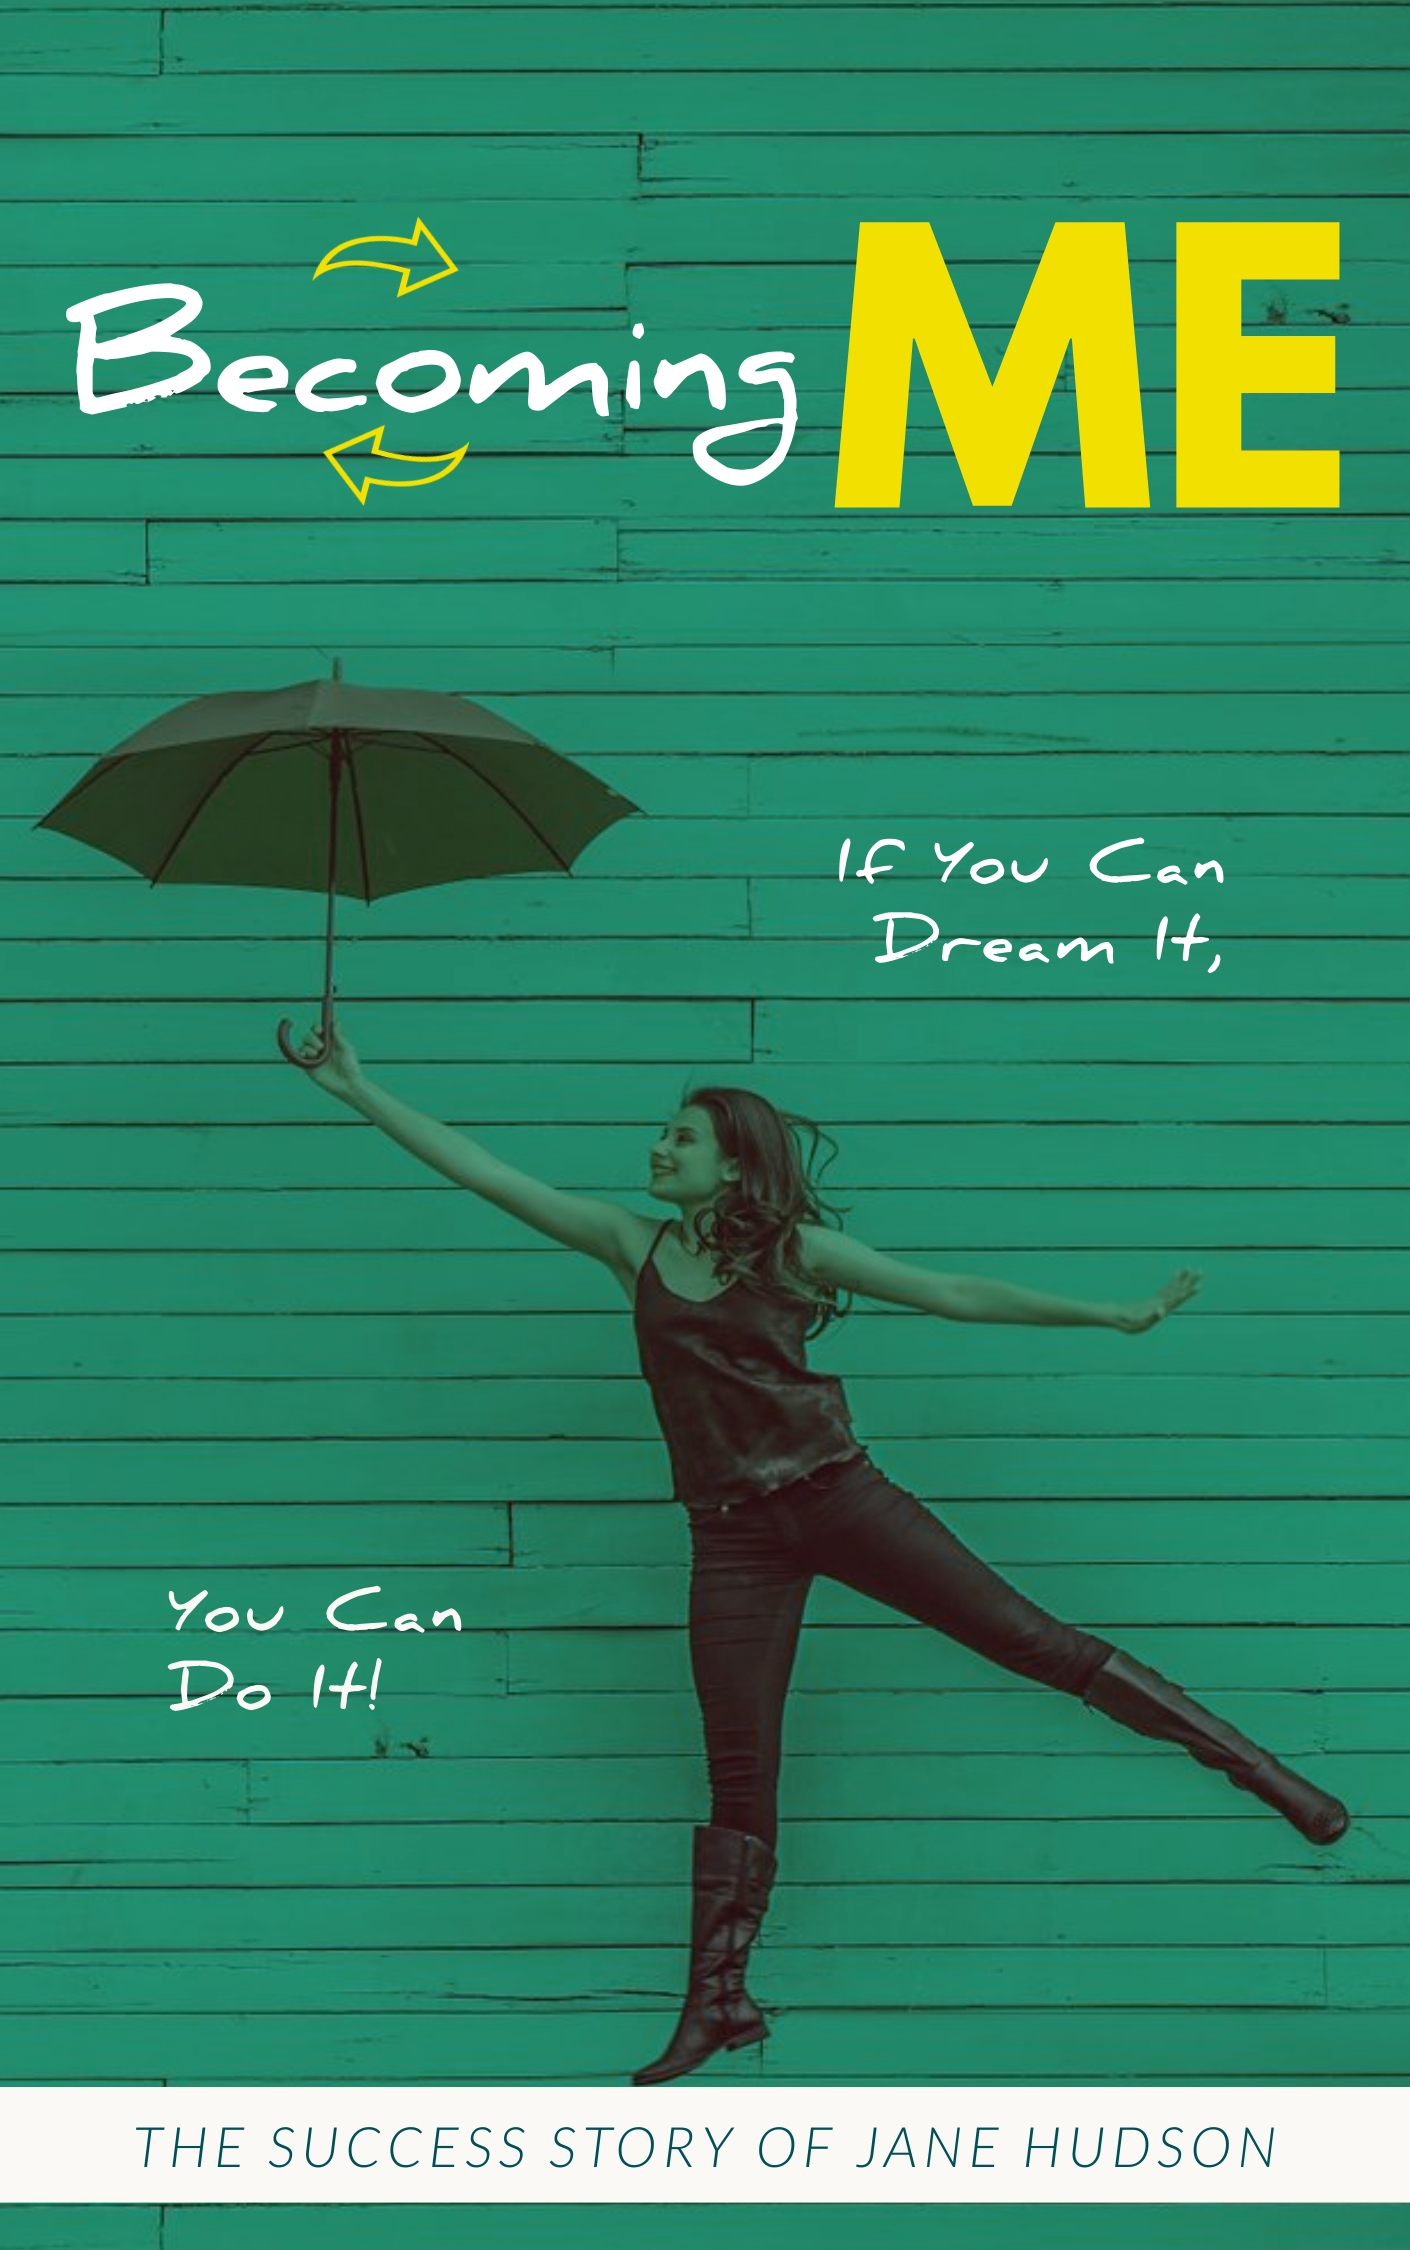 Autobiography Me - Book Cover Template